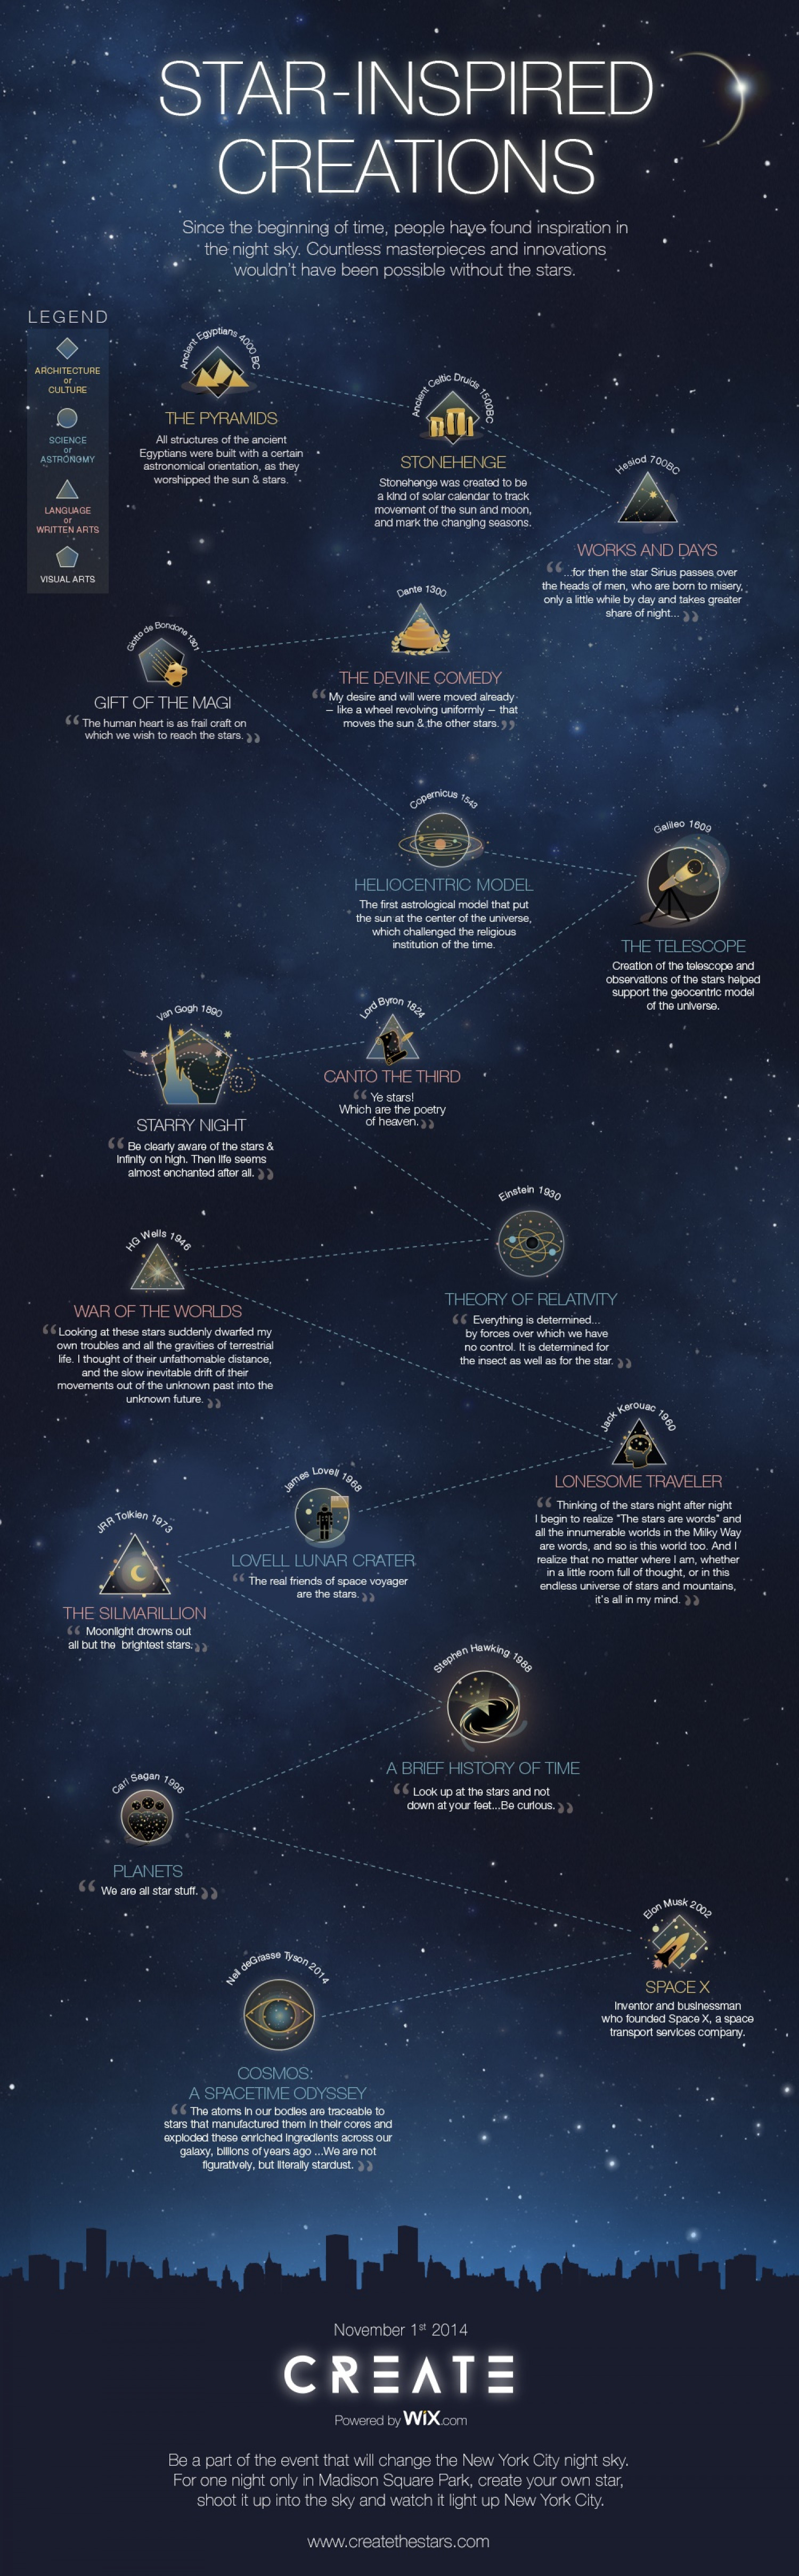 Famous Star-Inspired Creations and Inventions  Infographic